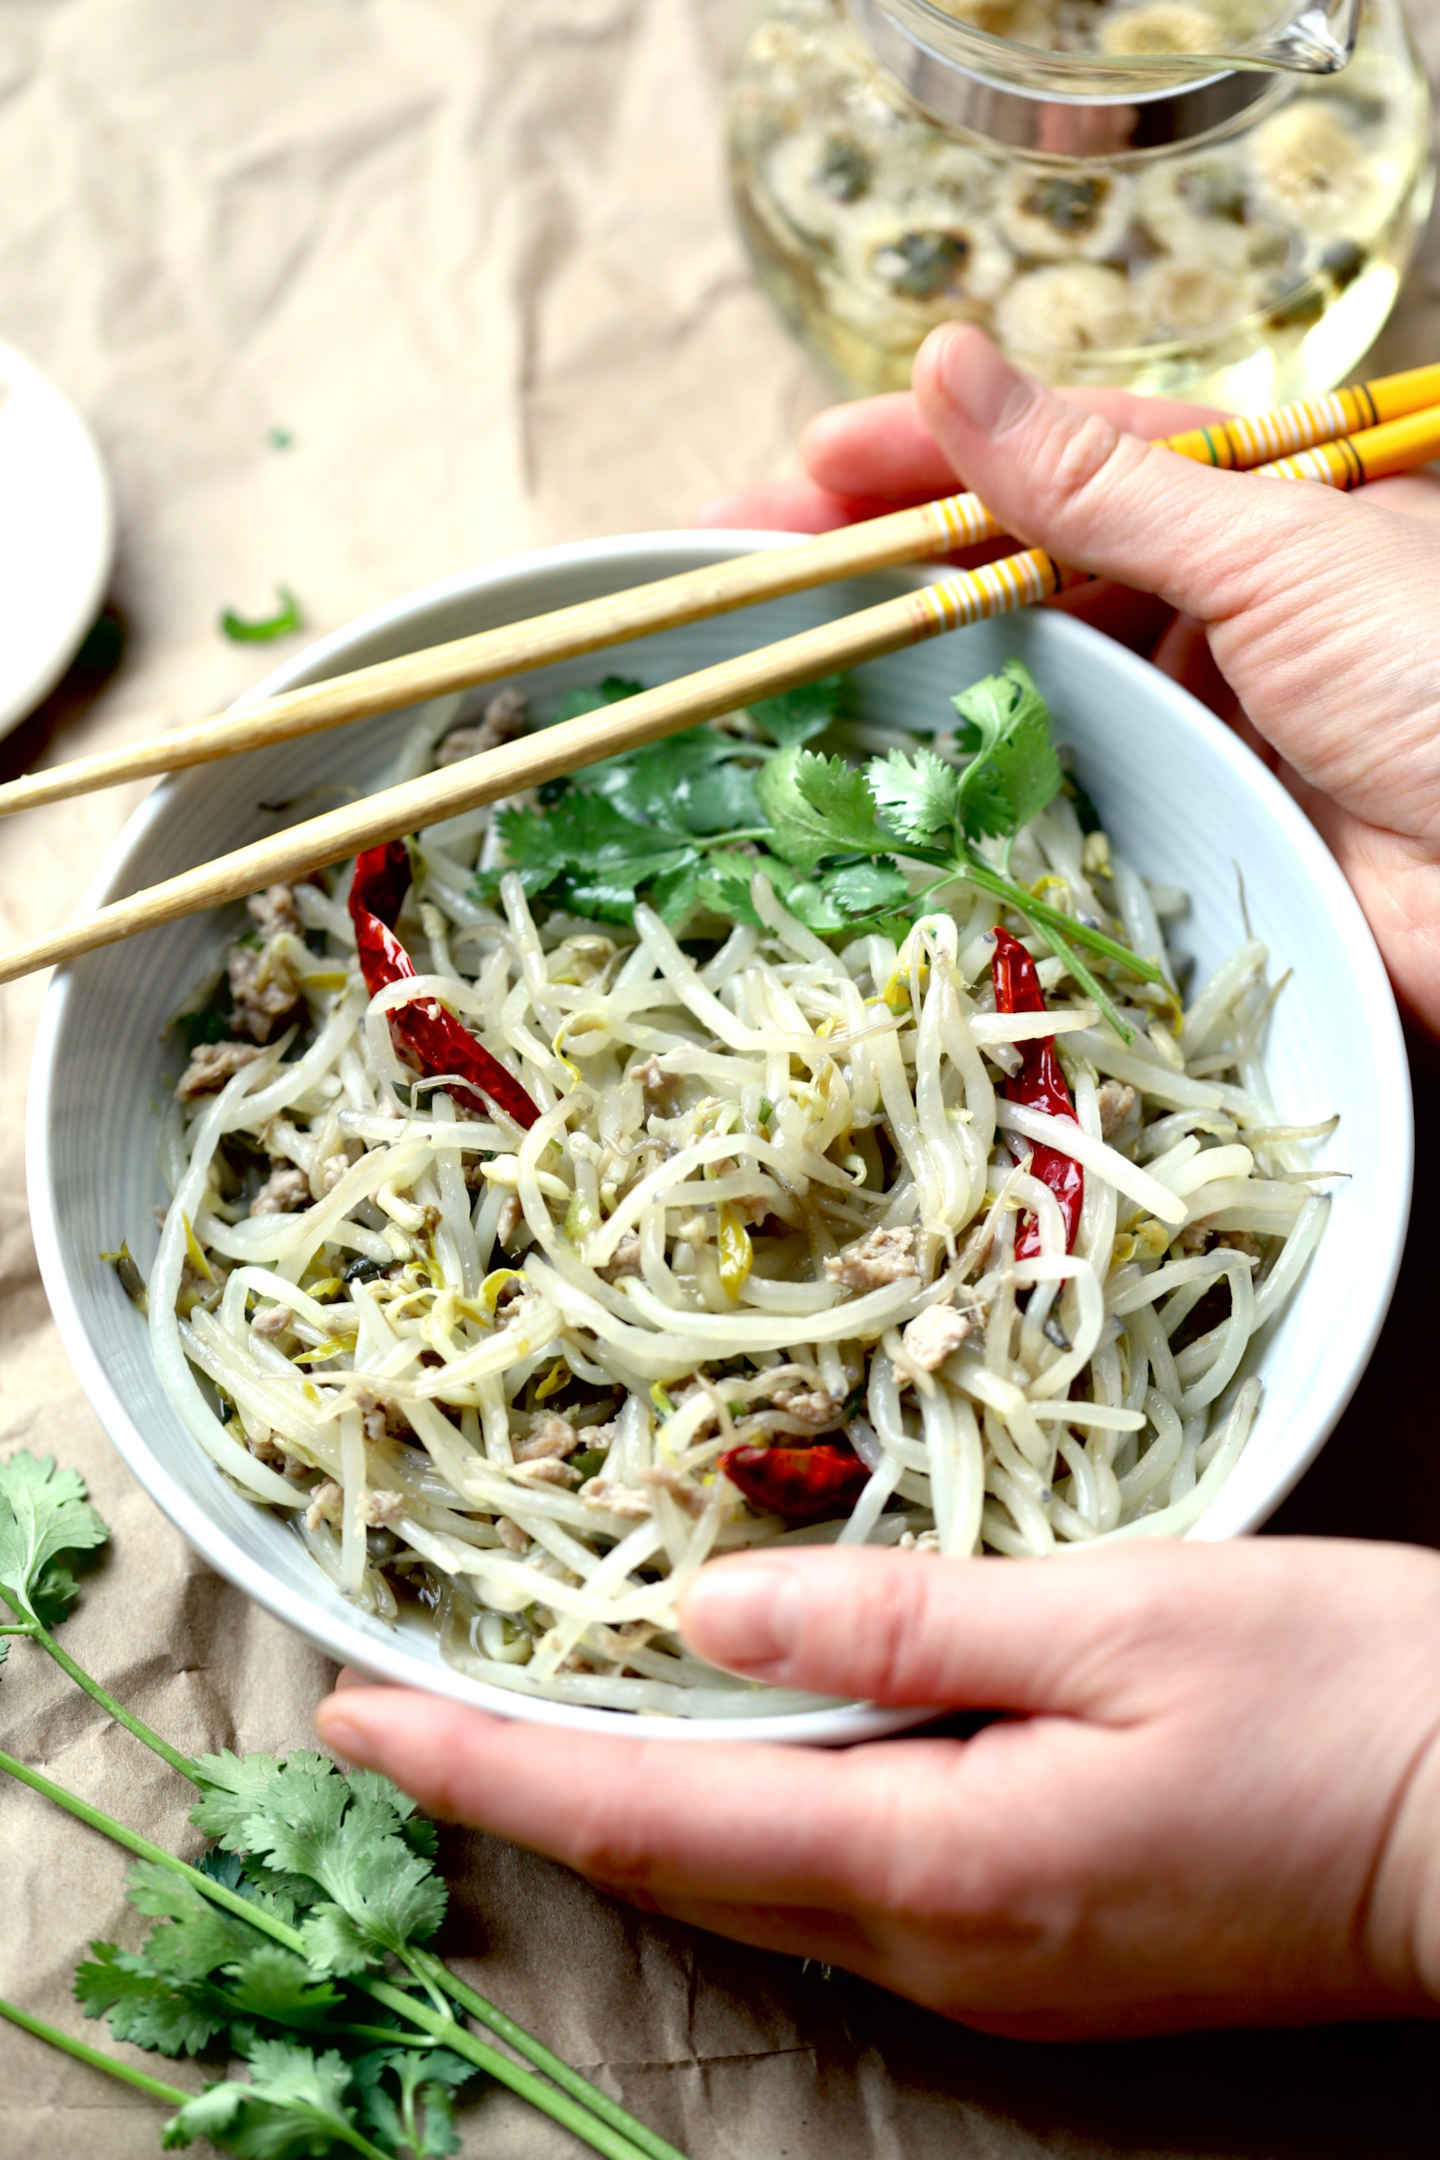 hands holding a dish of bean sprouts and a pair of chopsticks